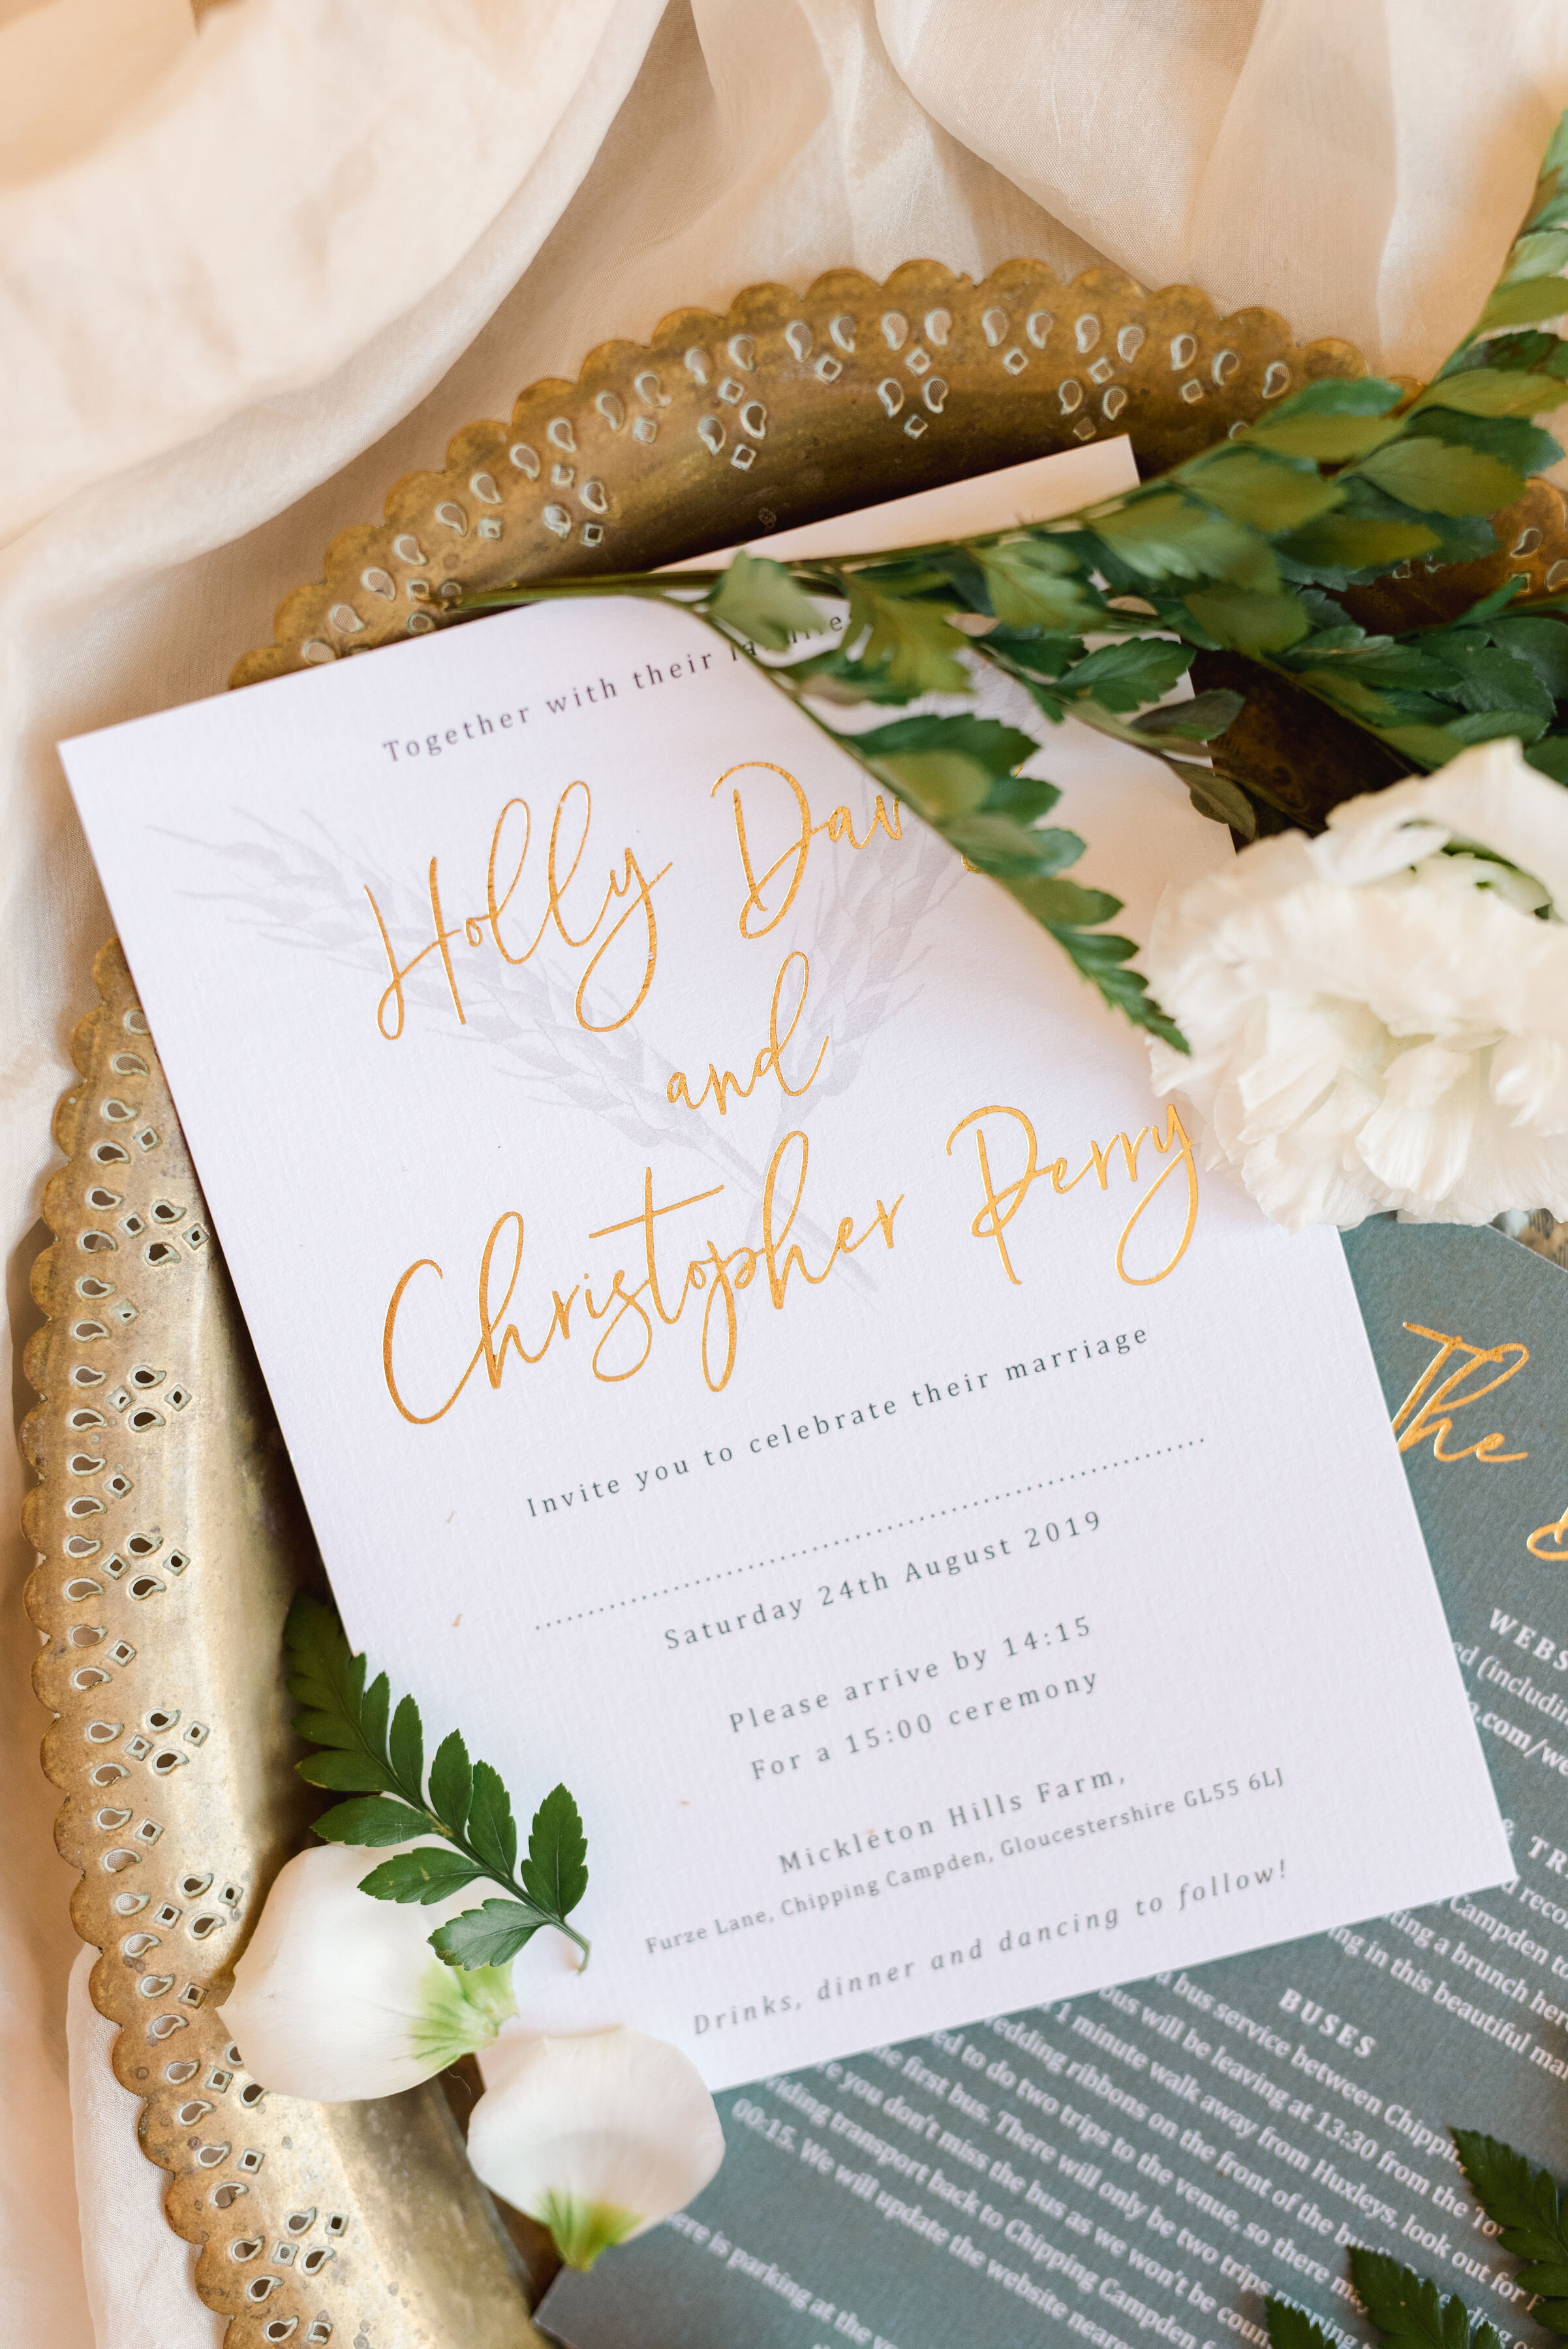 Rustic Elegance Wedding Invitations with Gold Foiling